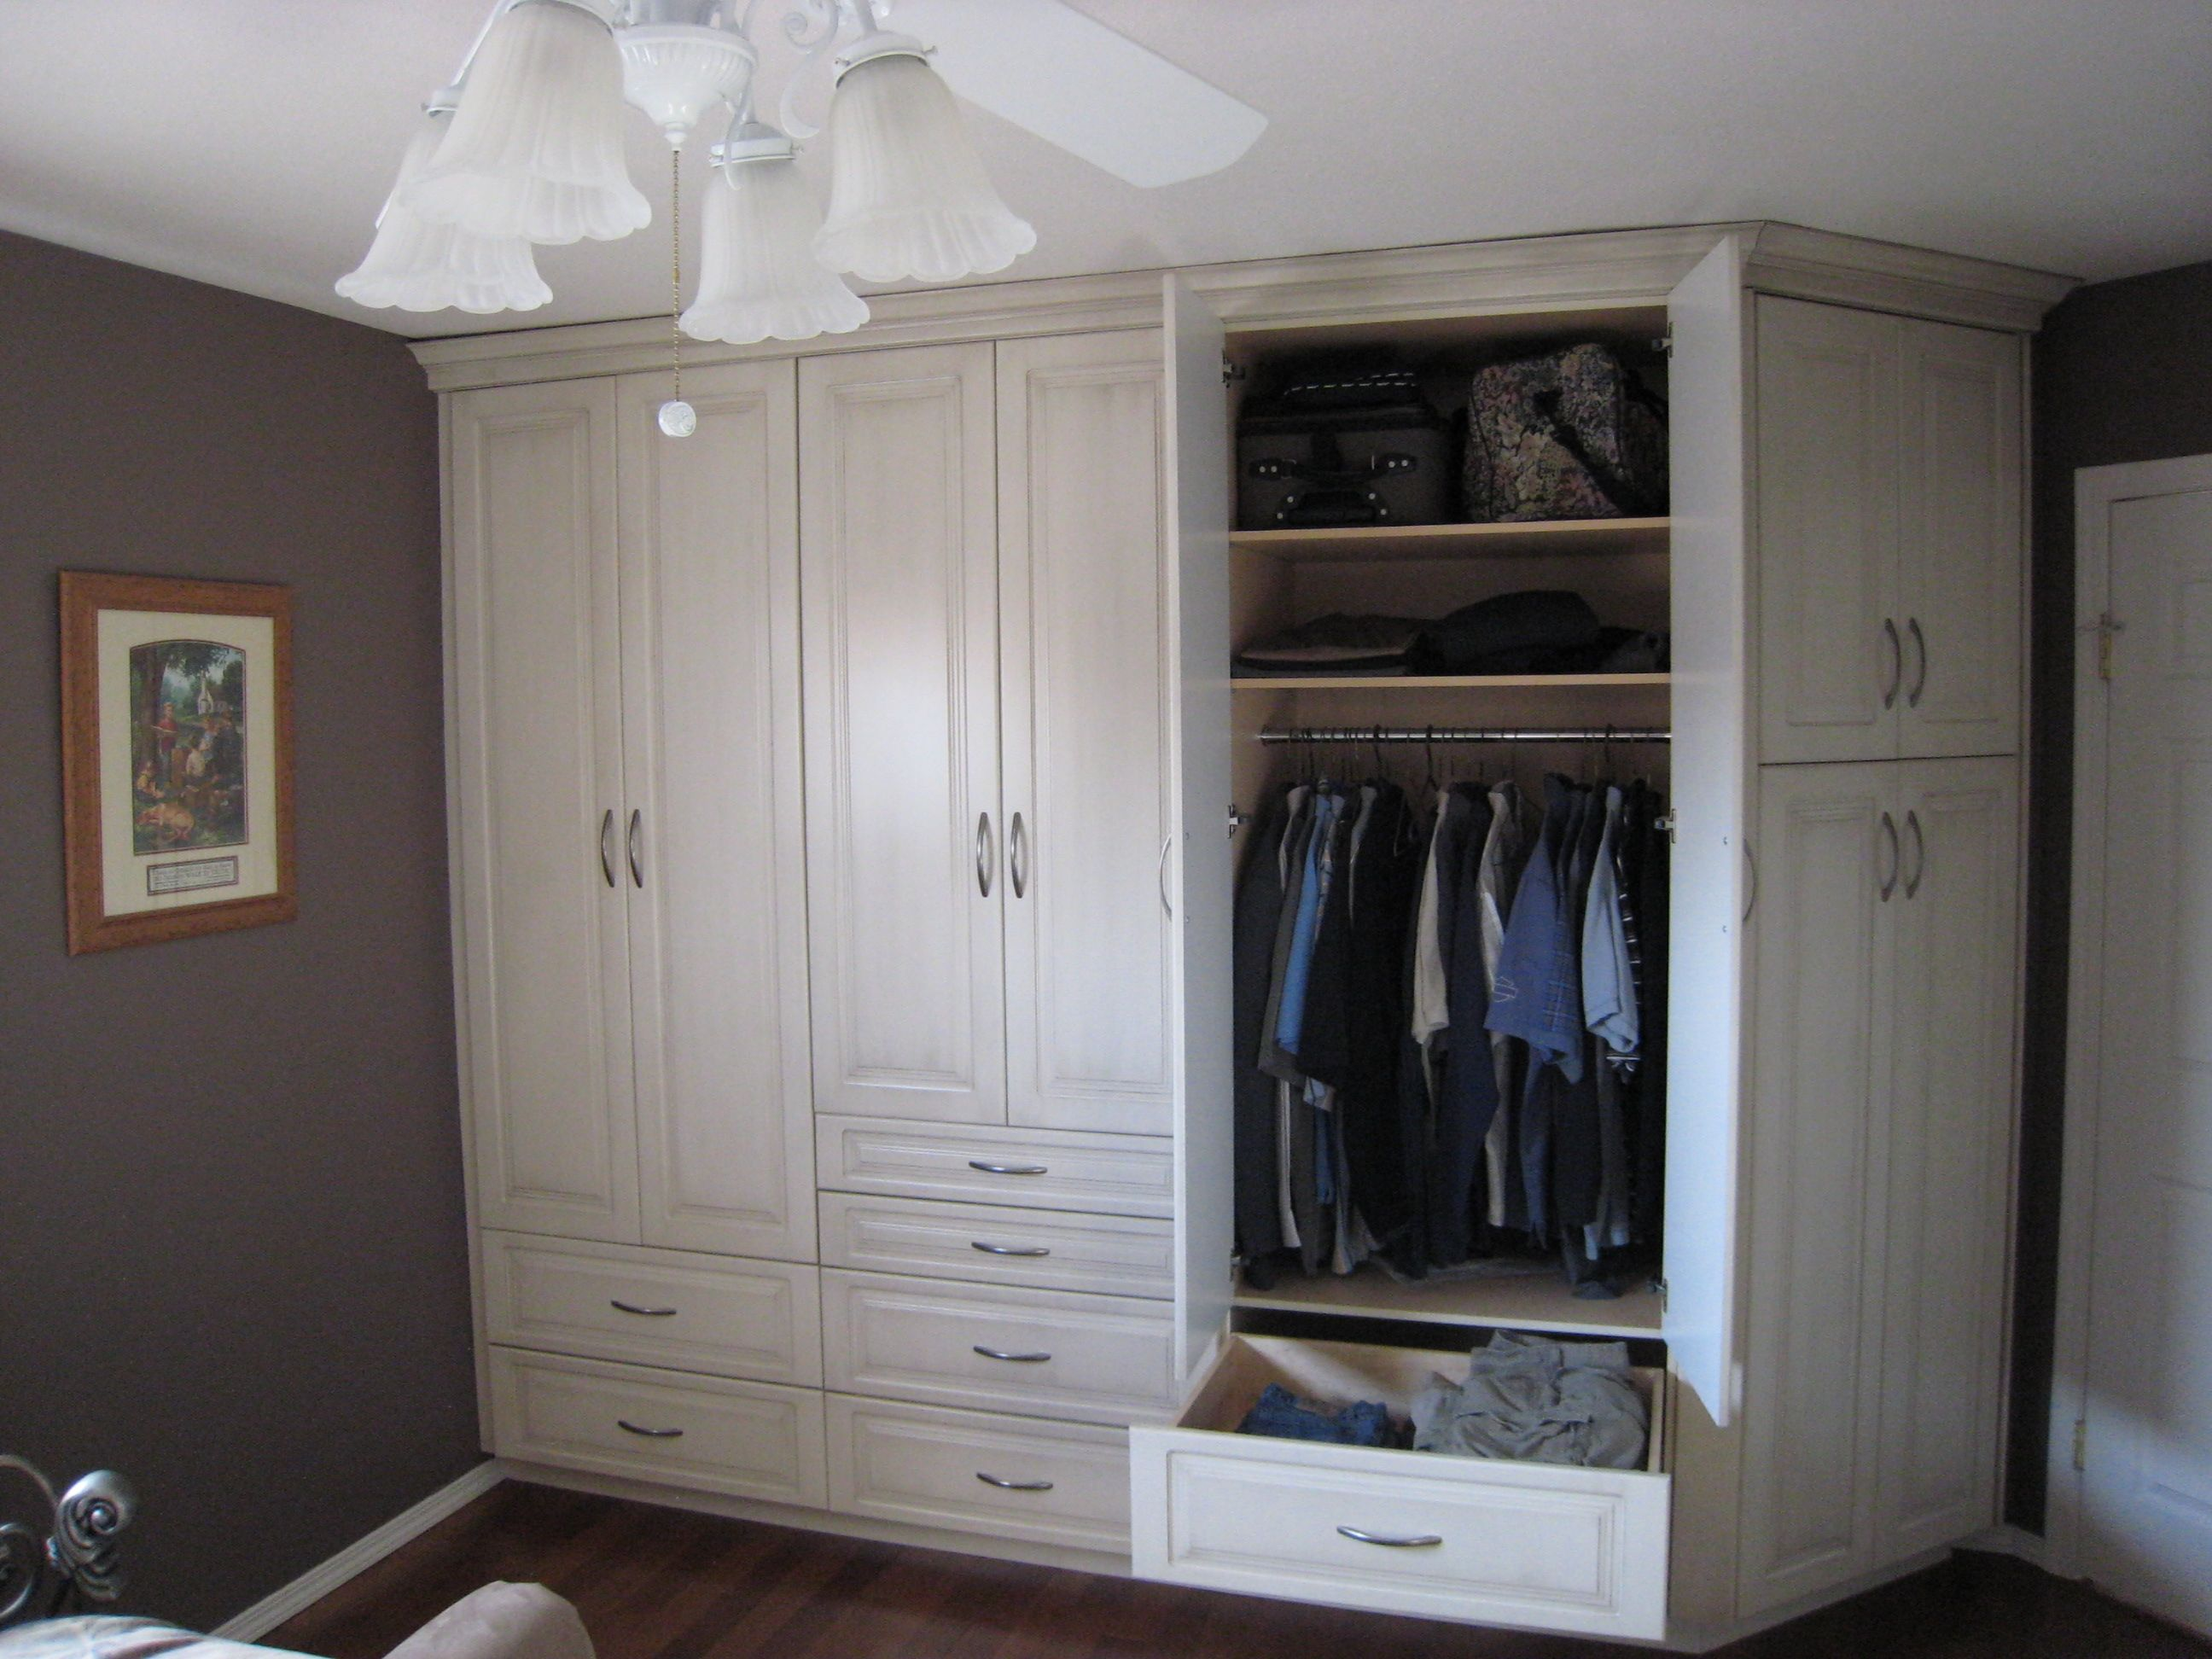 Bedroom Built In Closet Exactly What I Need In My Bedroom